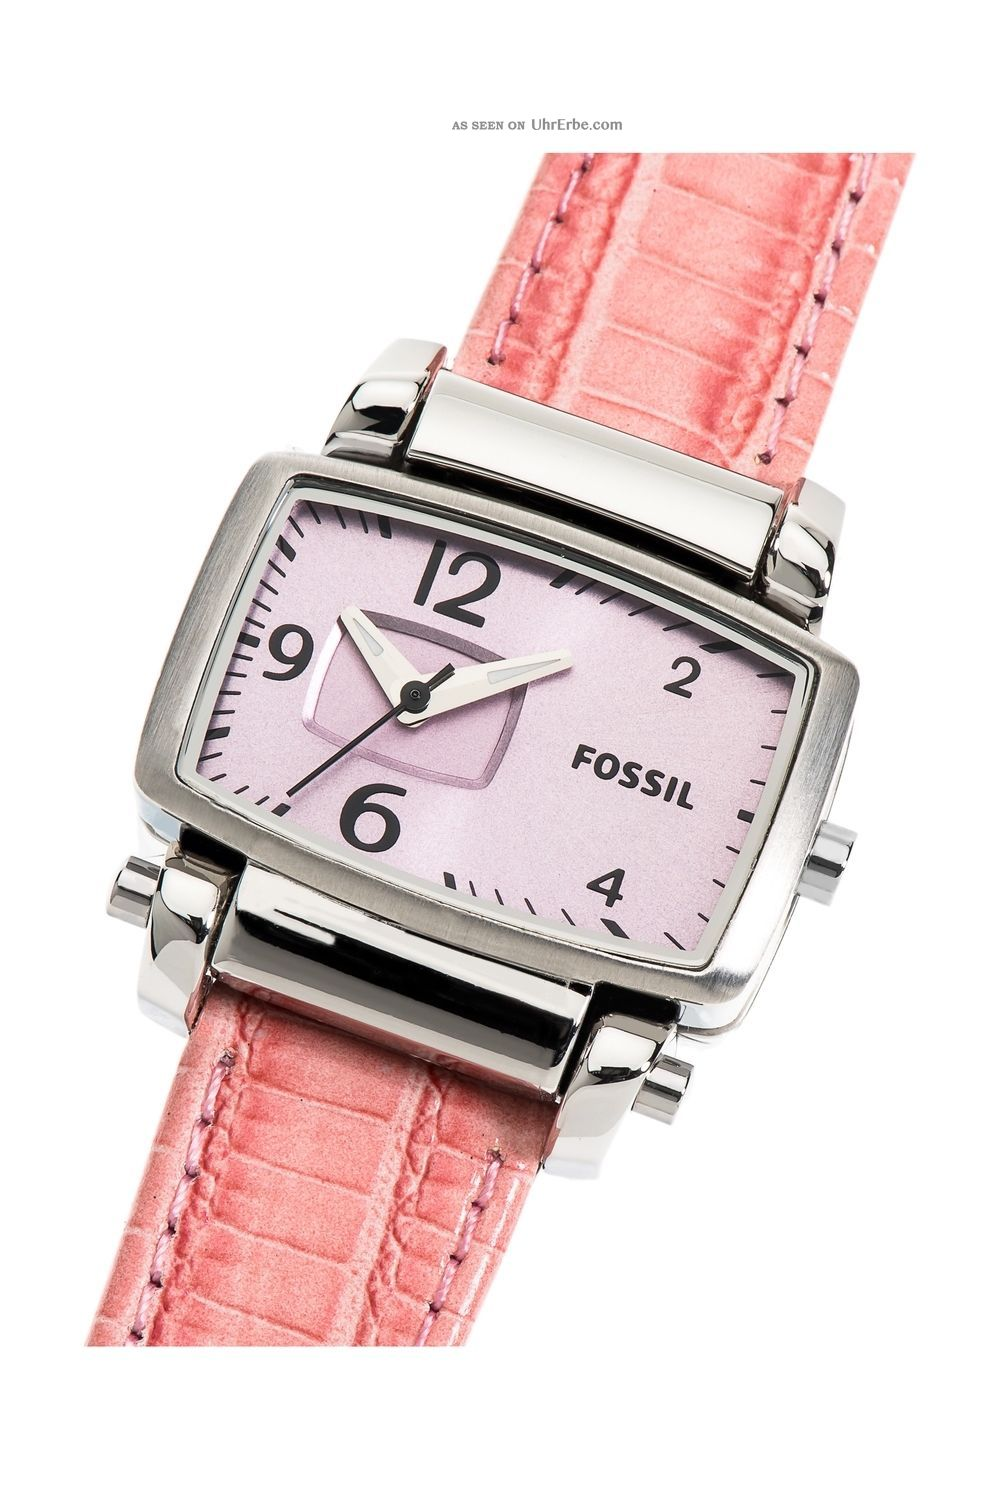 fossil watch bar damenuhr edelstahl lederarmband rosa. Black Bedroom Furniture Sets. Home Design Ideas